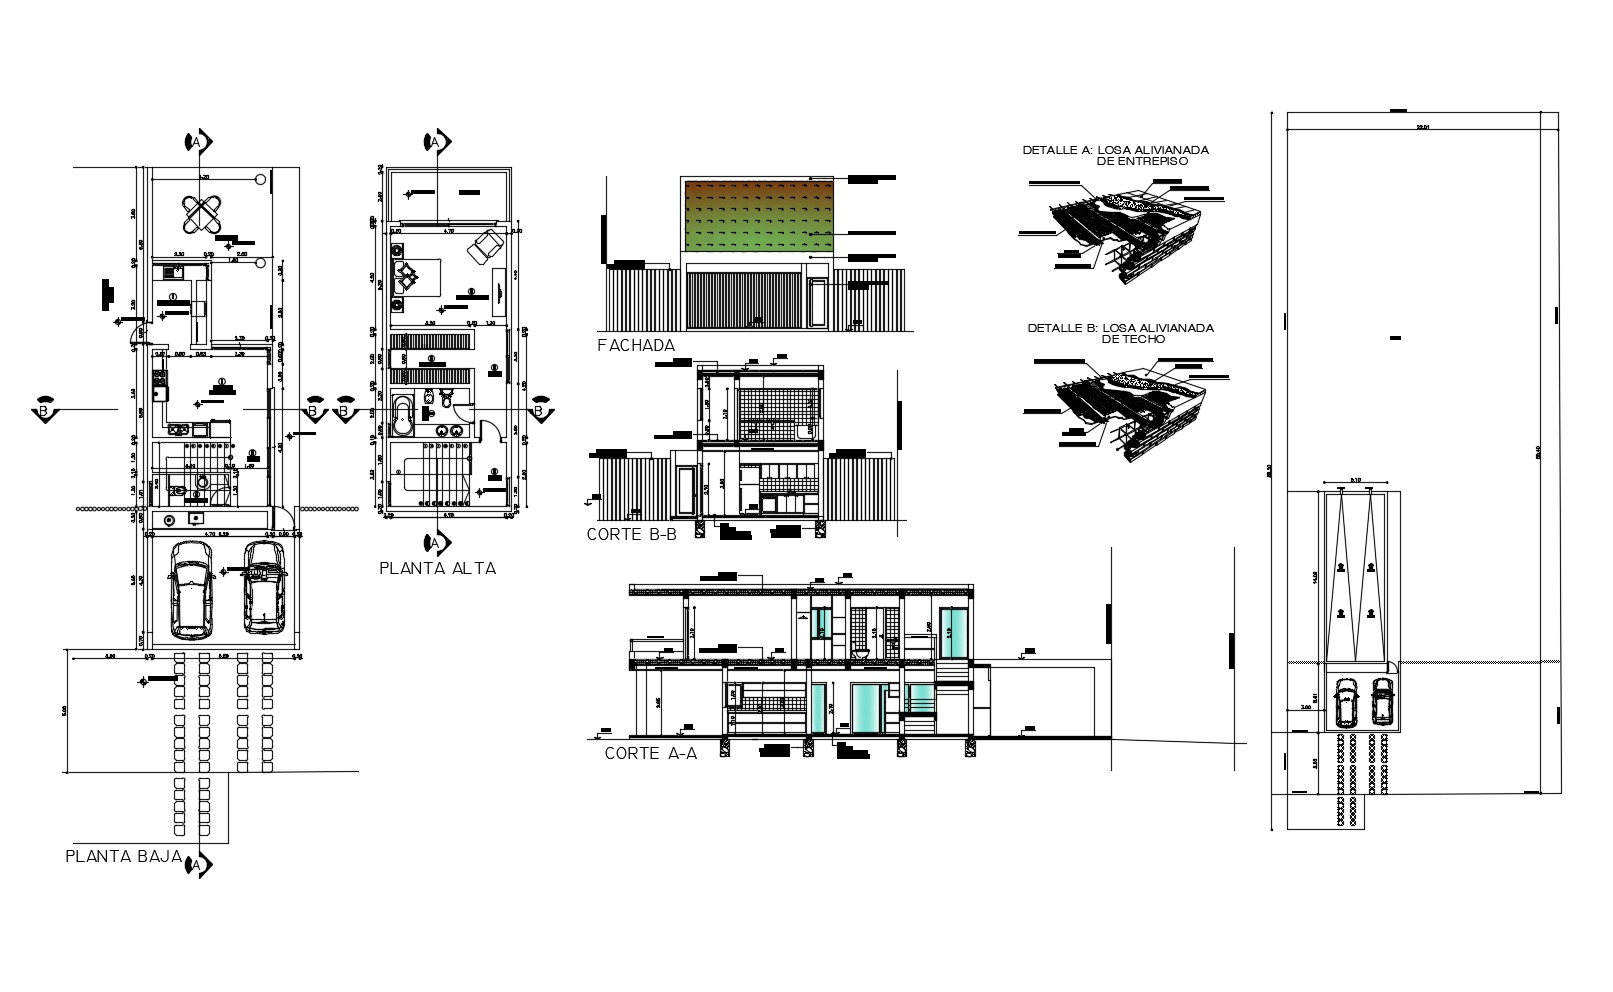 Architectural plan of the residential house with elevation detail in dwg file